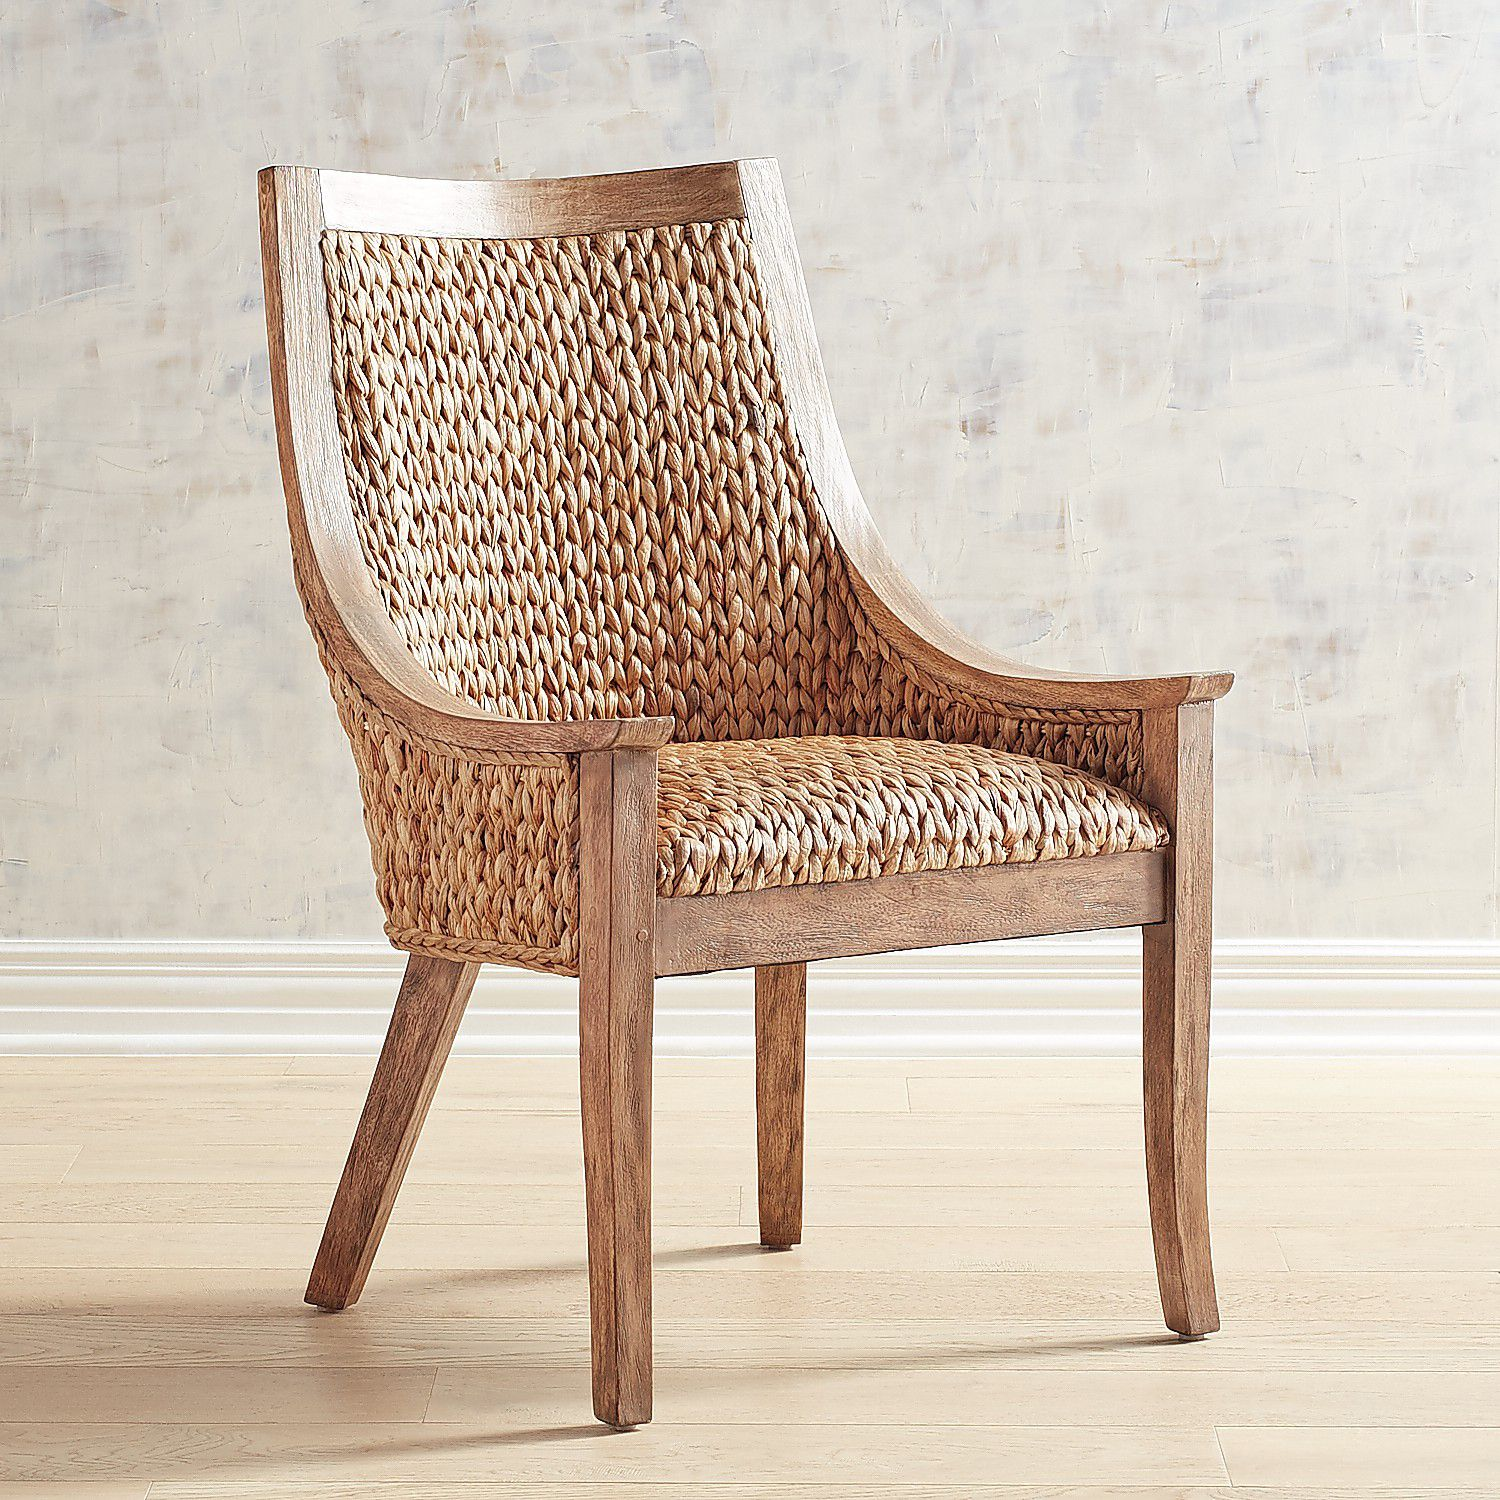 Cinta Wicker Dining Chair with Natural Stonewash Wood | Pier 1